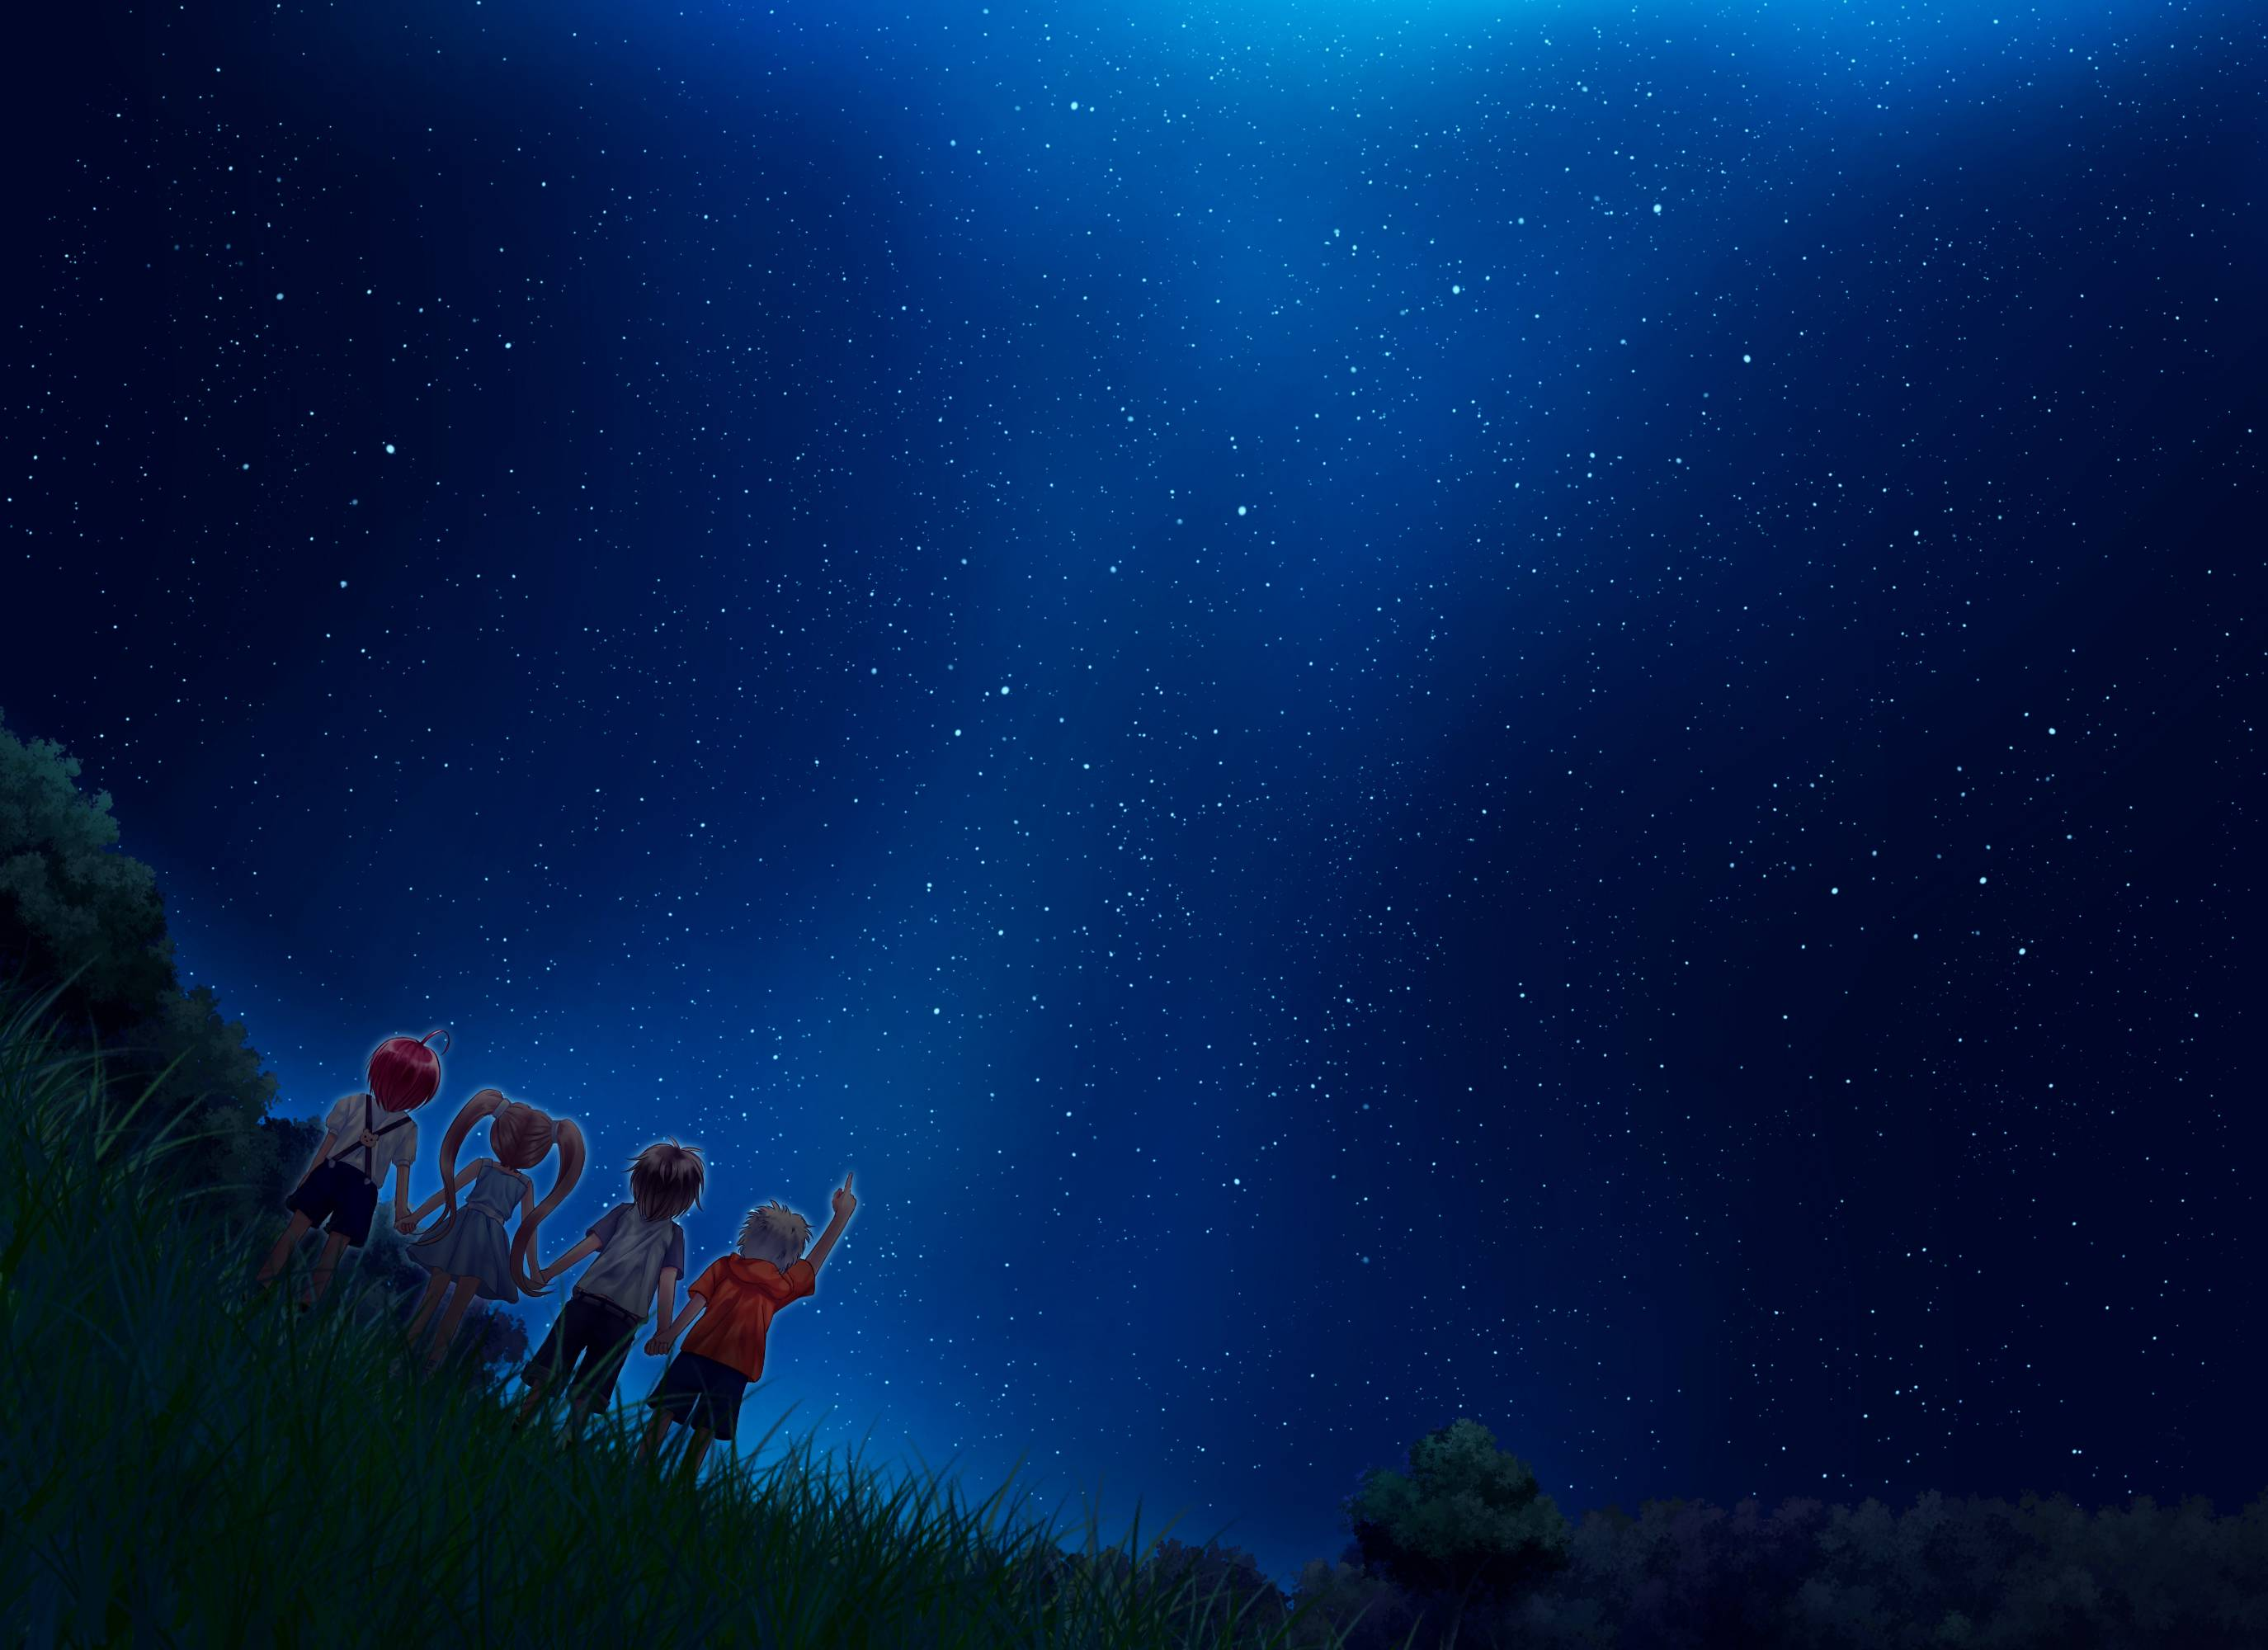 wallpaper starry night for - photo #21